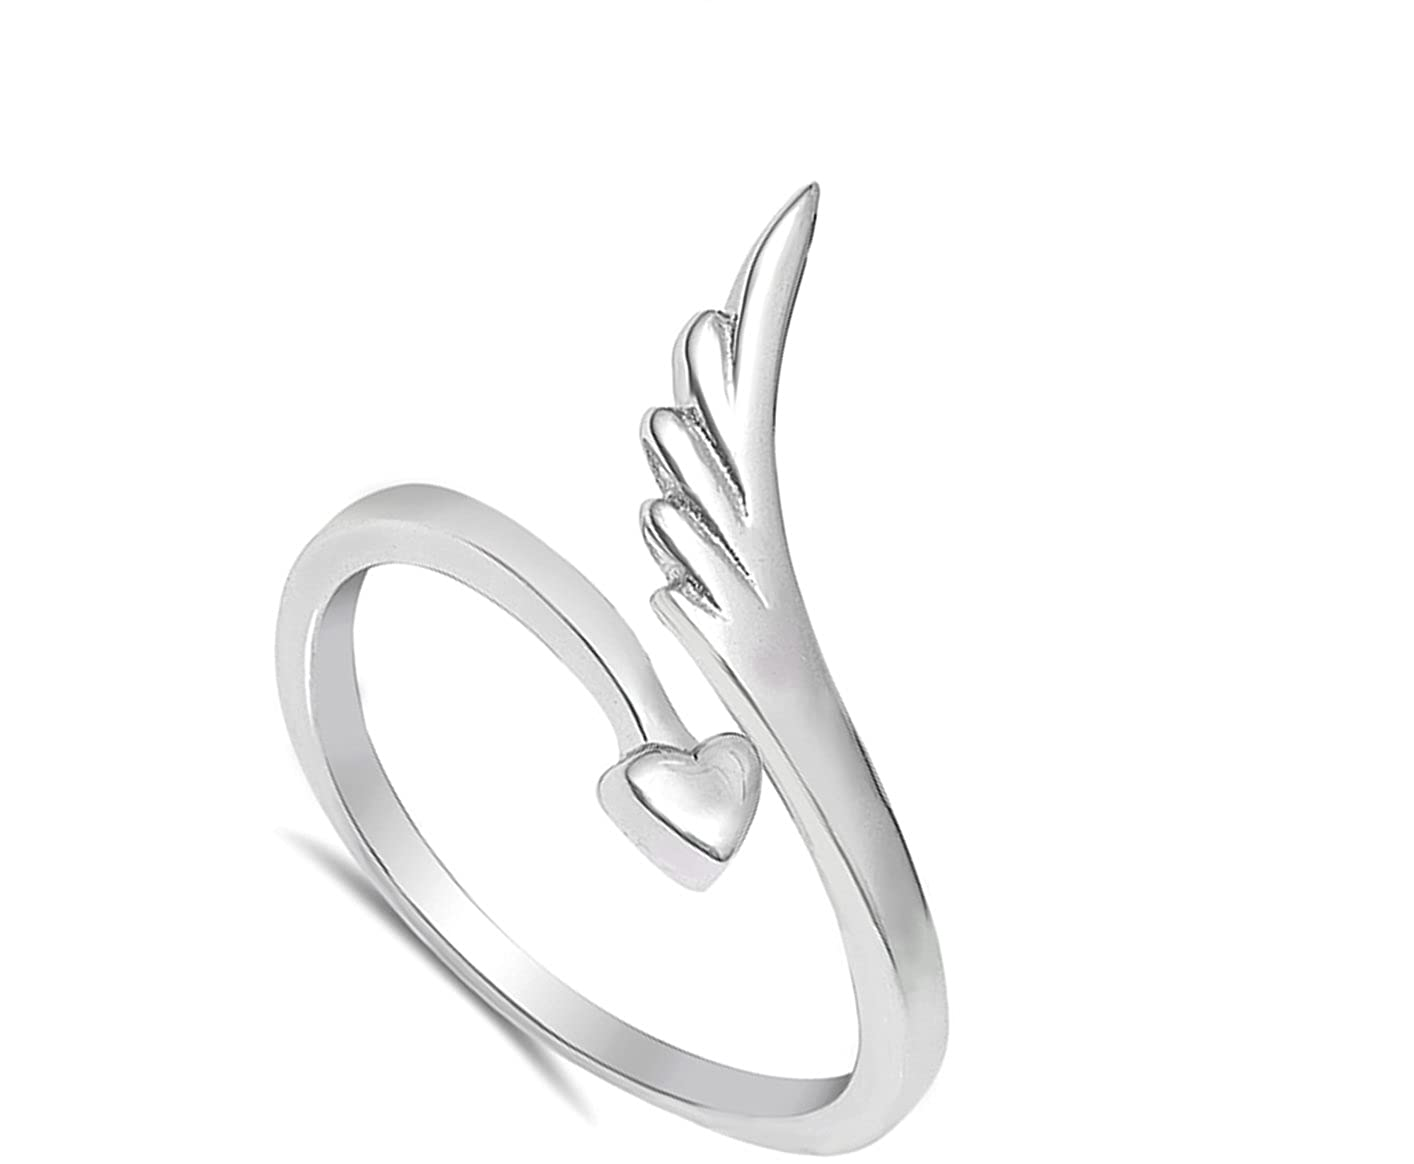 Wing Heart Promise Arrow Open Cute Ring New .925 Sterling Silver Band Sizes 4-10